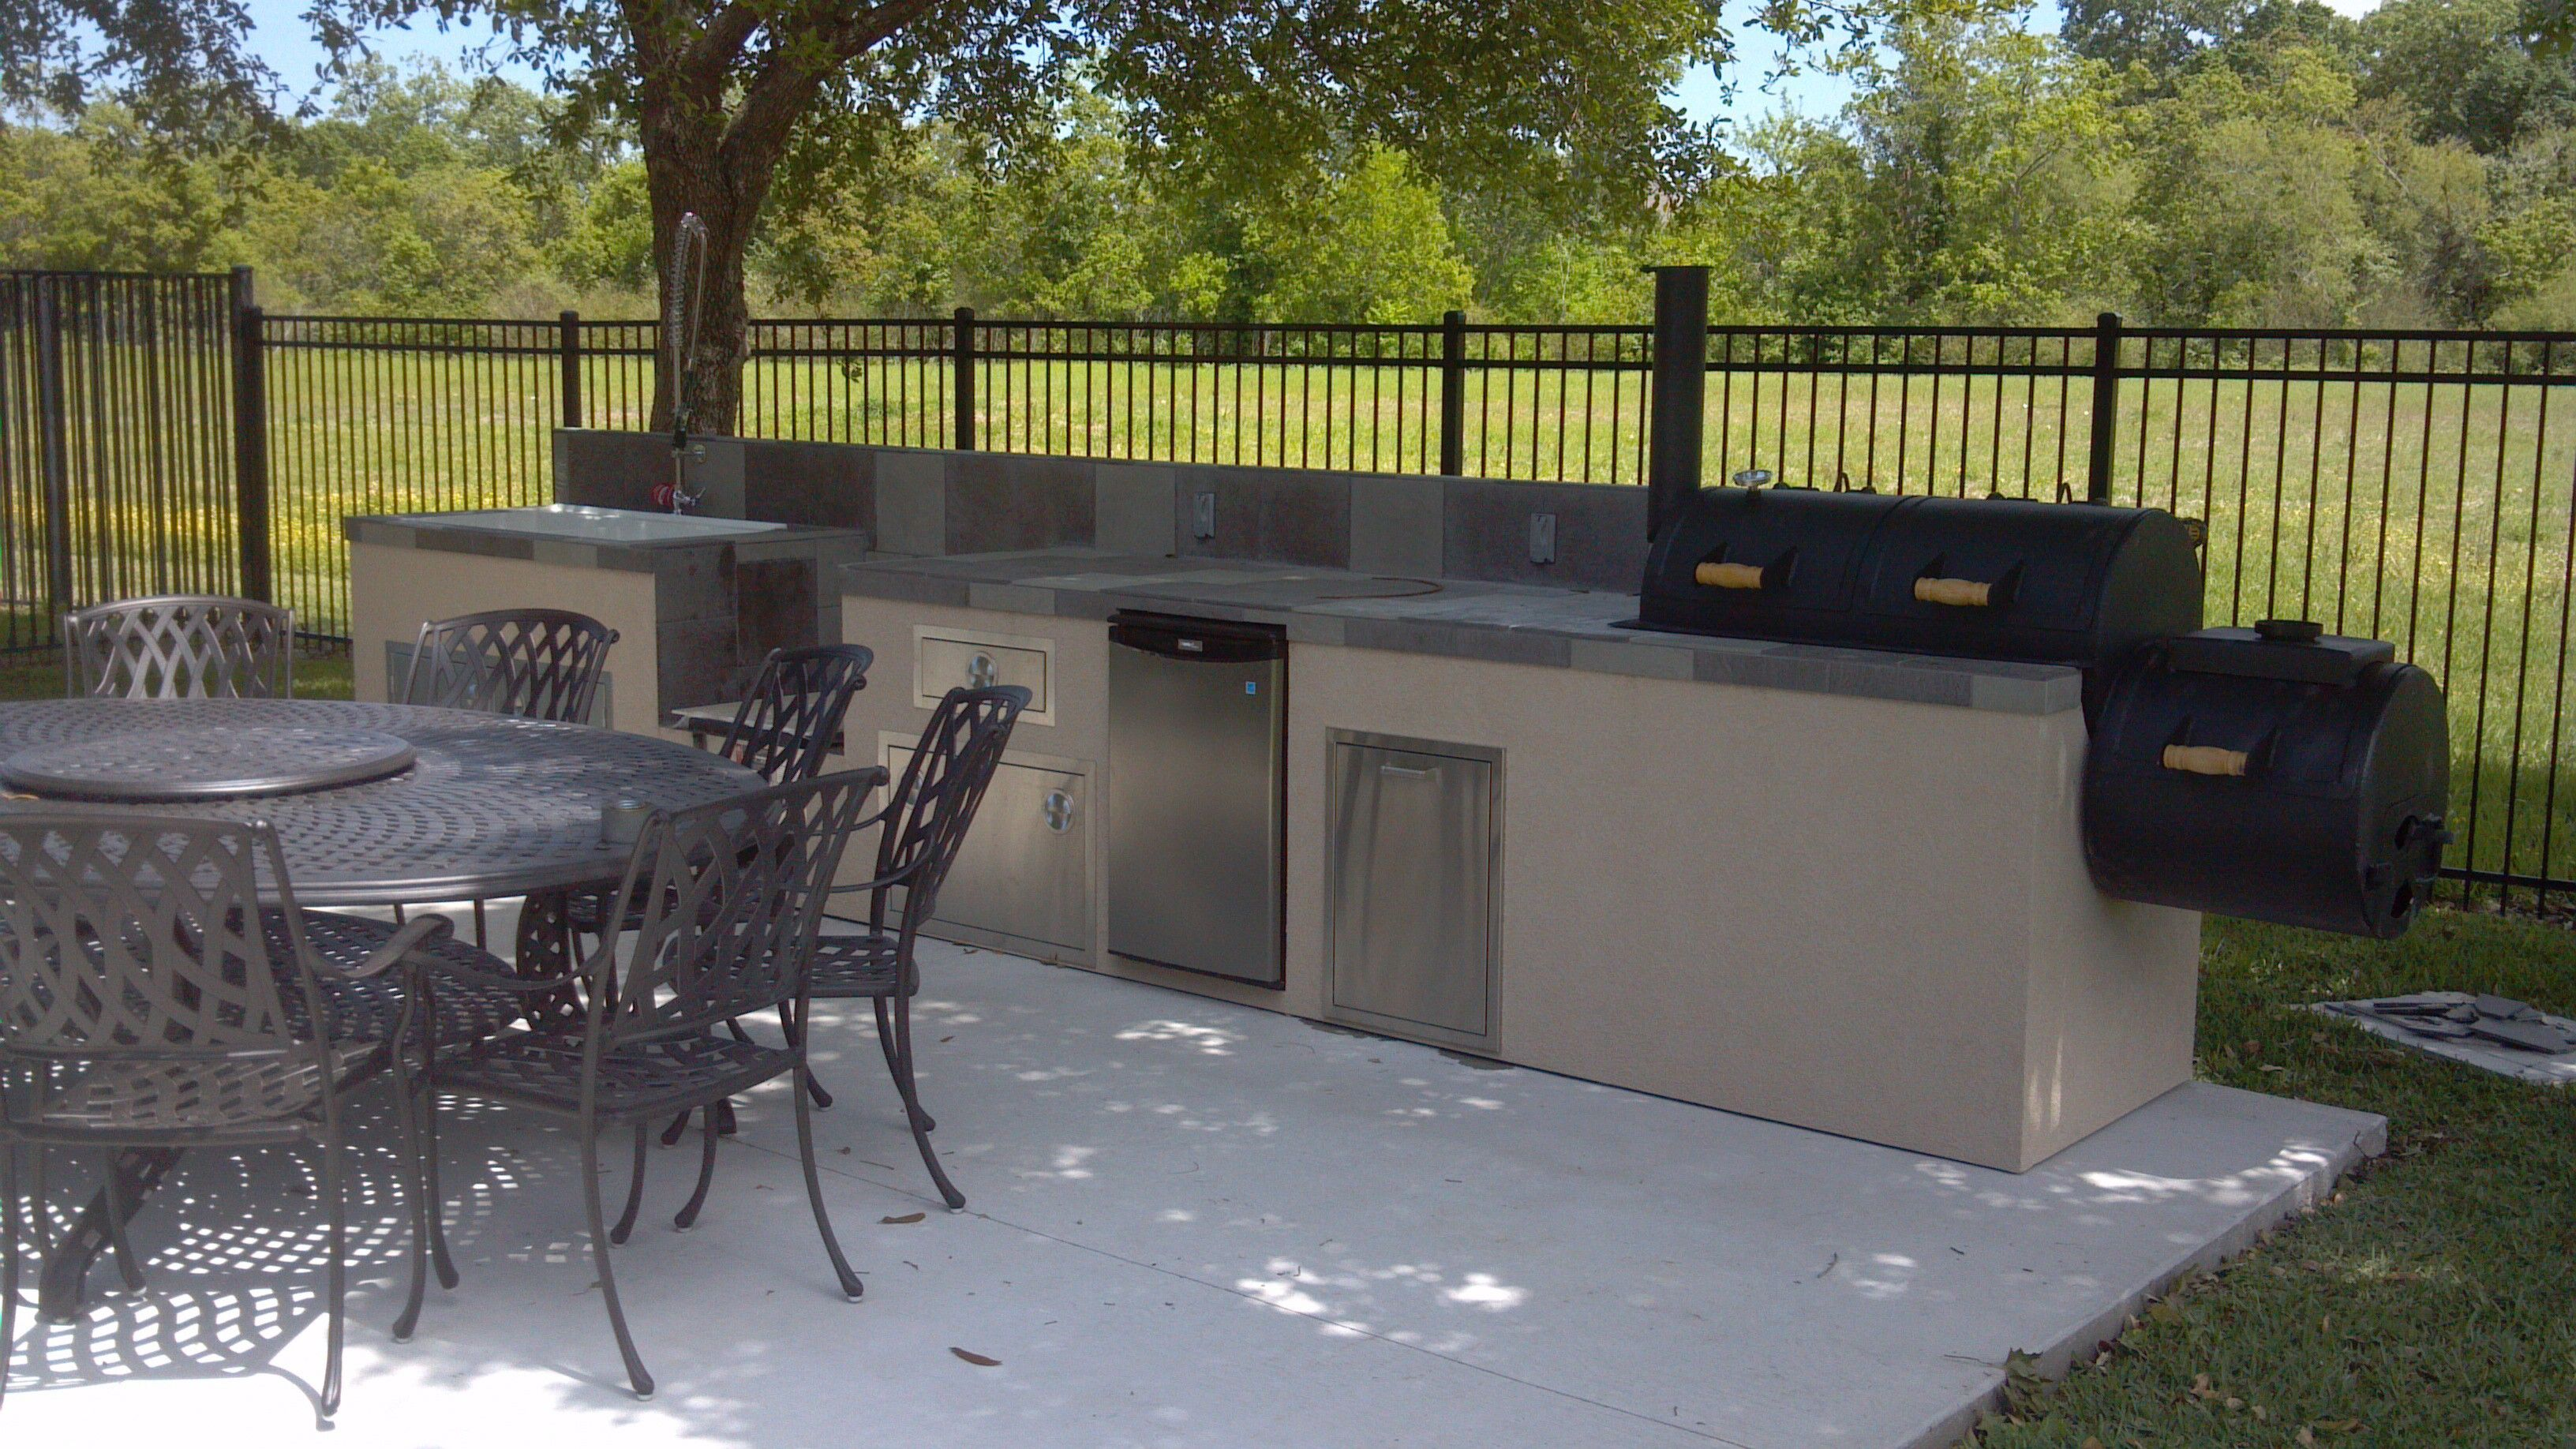 outdoor kitchens smoker google search smoker grill ideas pinterest on outdoor kitchen with smoker id=73076